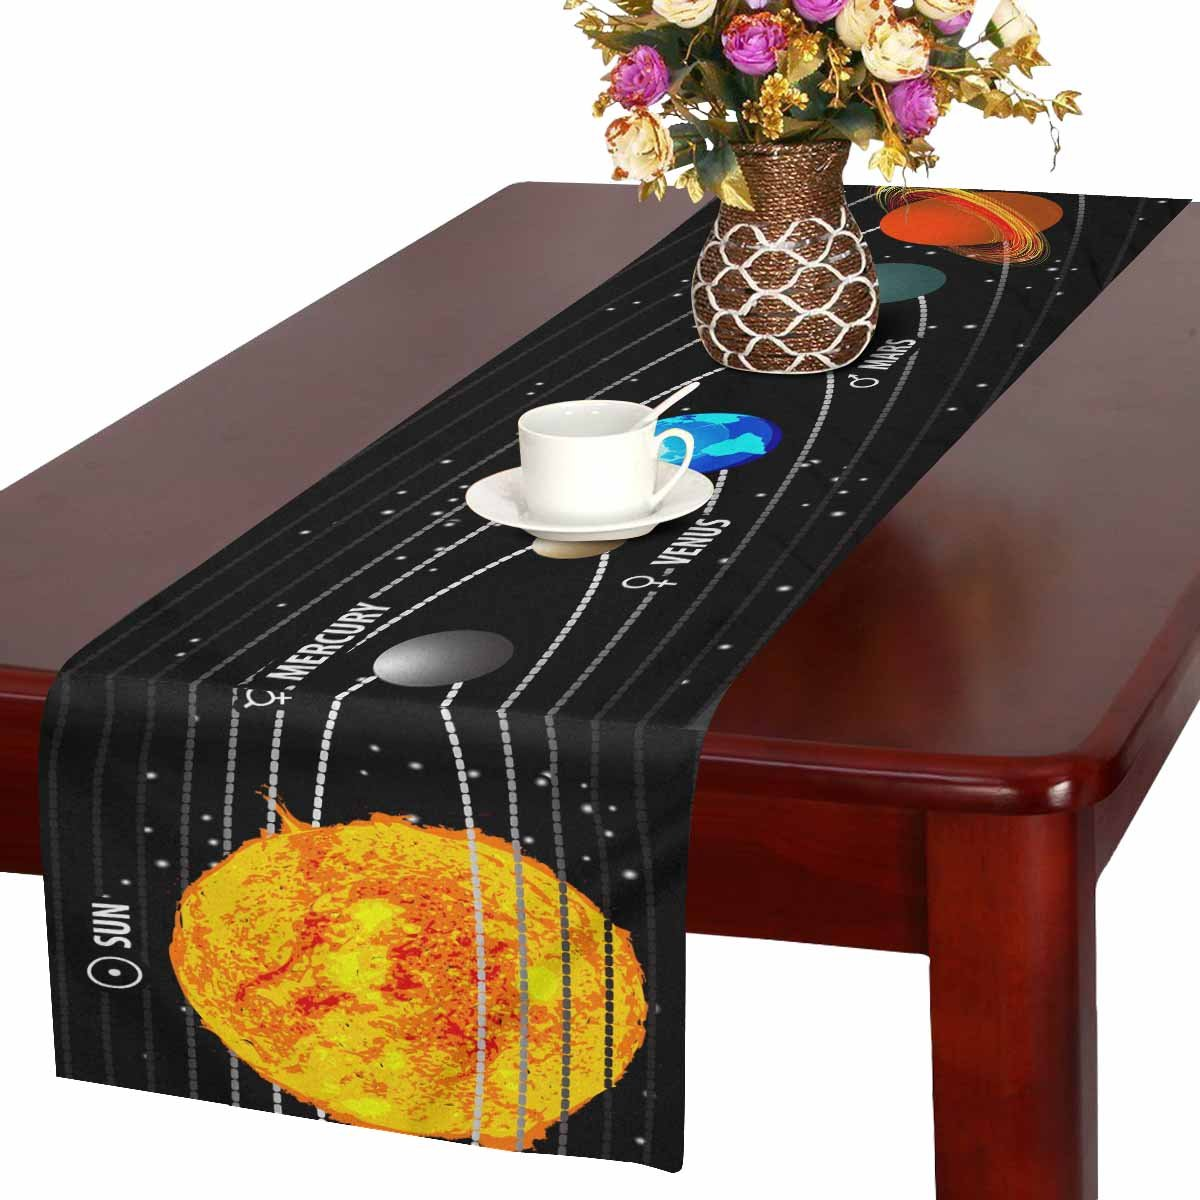 InterestPrint Planet of Solar System With Astronomical Long Table Runner 16 X 72 Inch,Natural Rectangle Table Runners,Wedding Party Decoration Kitchen Decor Farmhouse Decoration